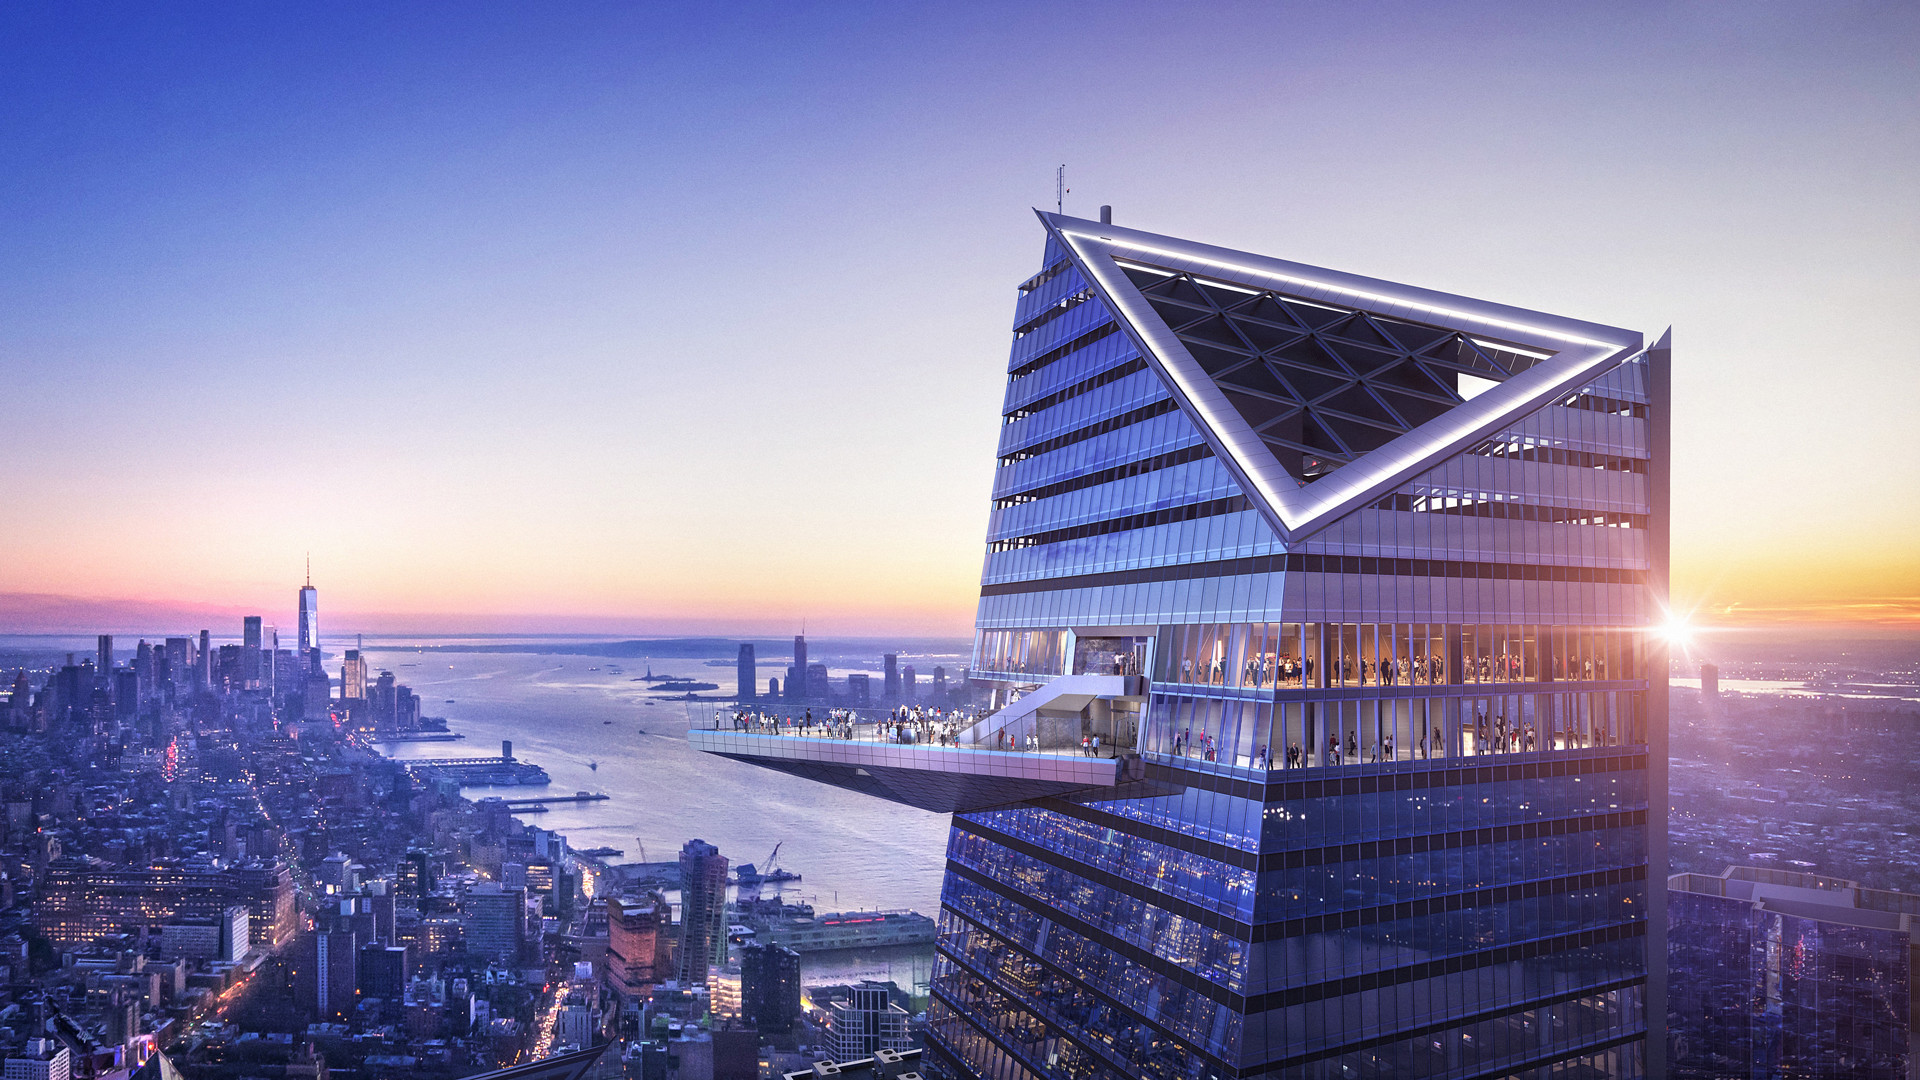 Edge and Peak, Hudson Yards, New York